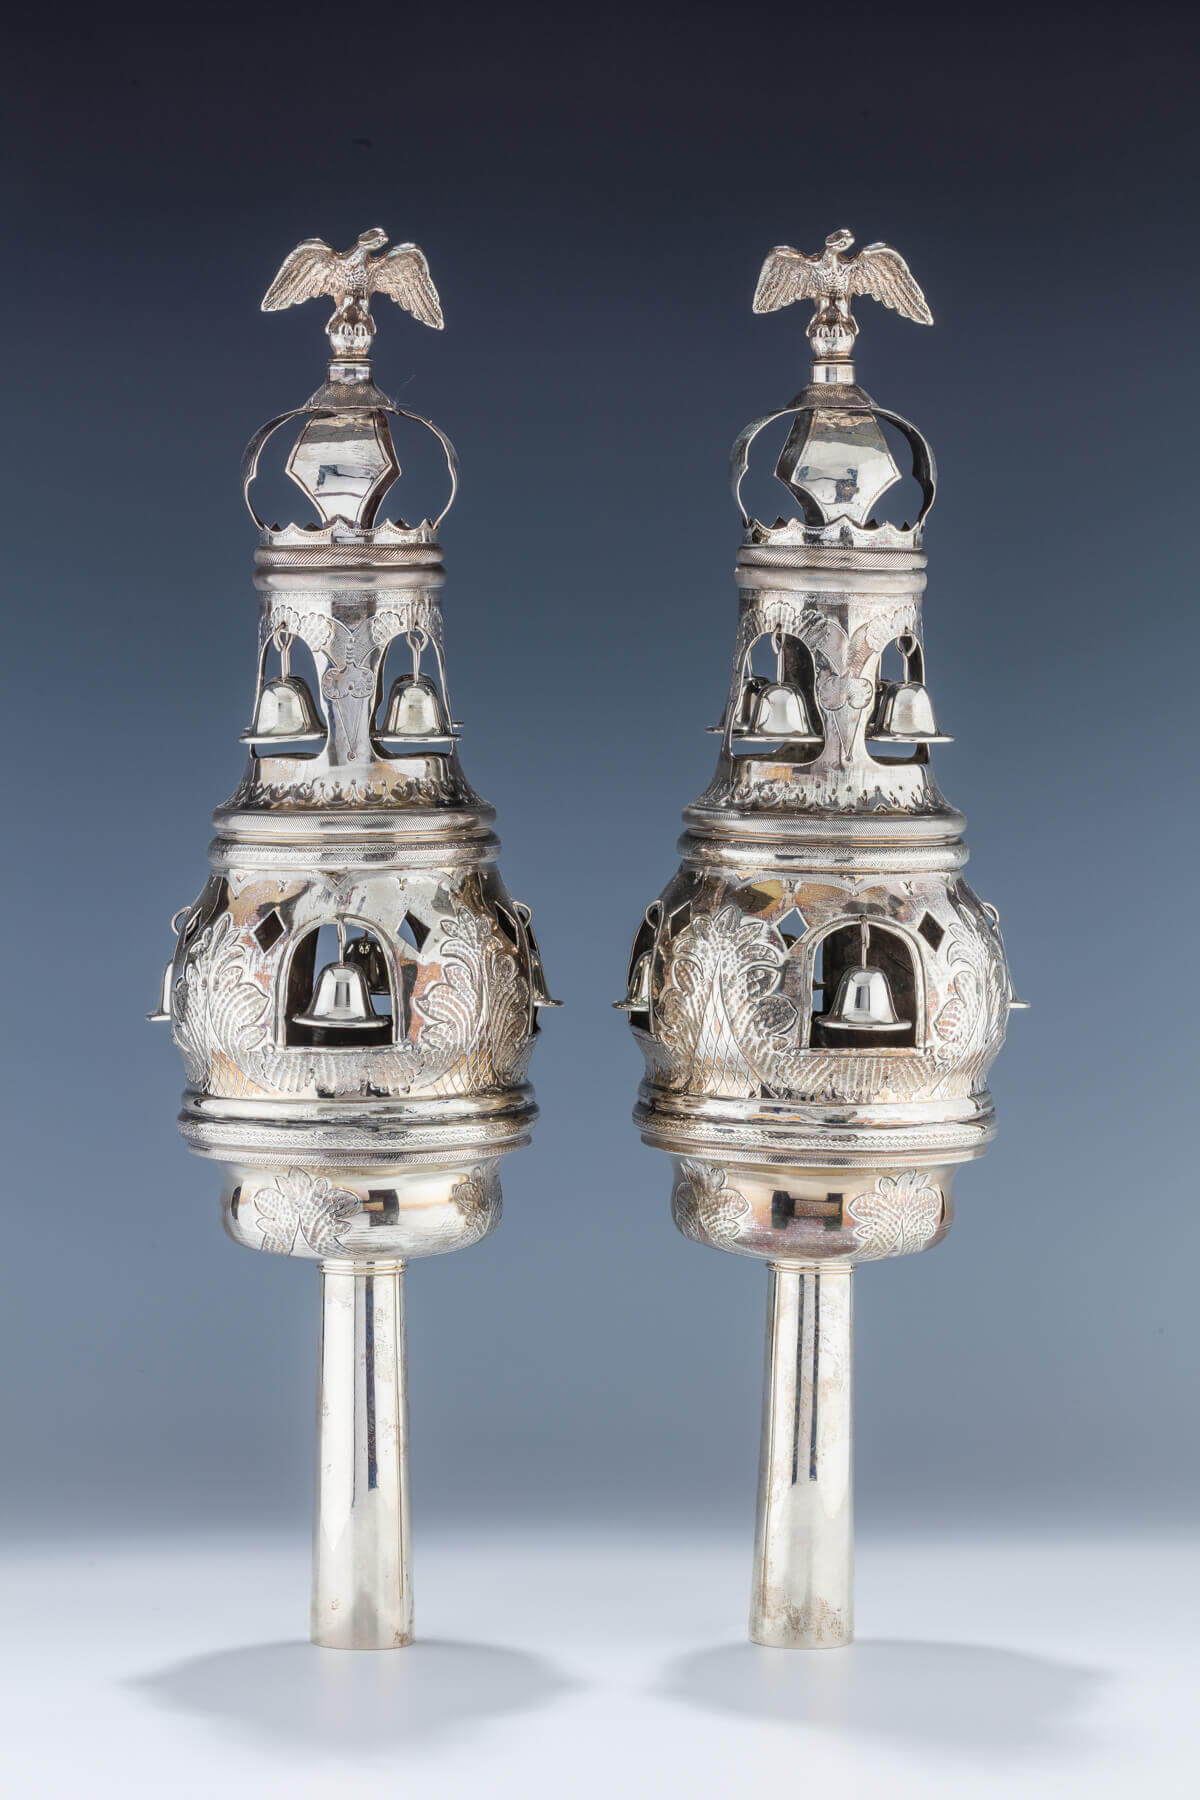 094. A RARE PAIR OF LARGE SILVER TORAH FINIALS